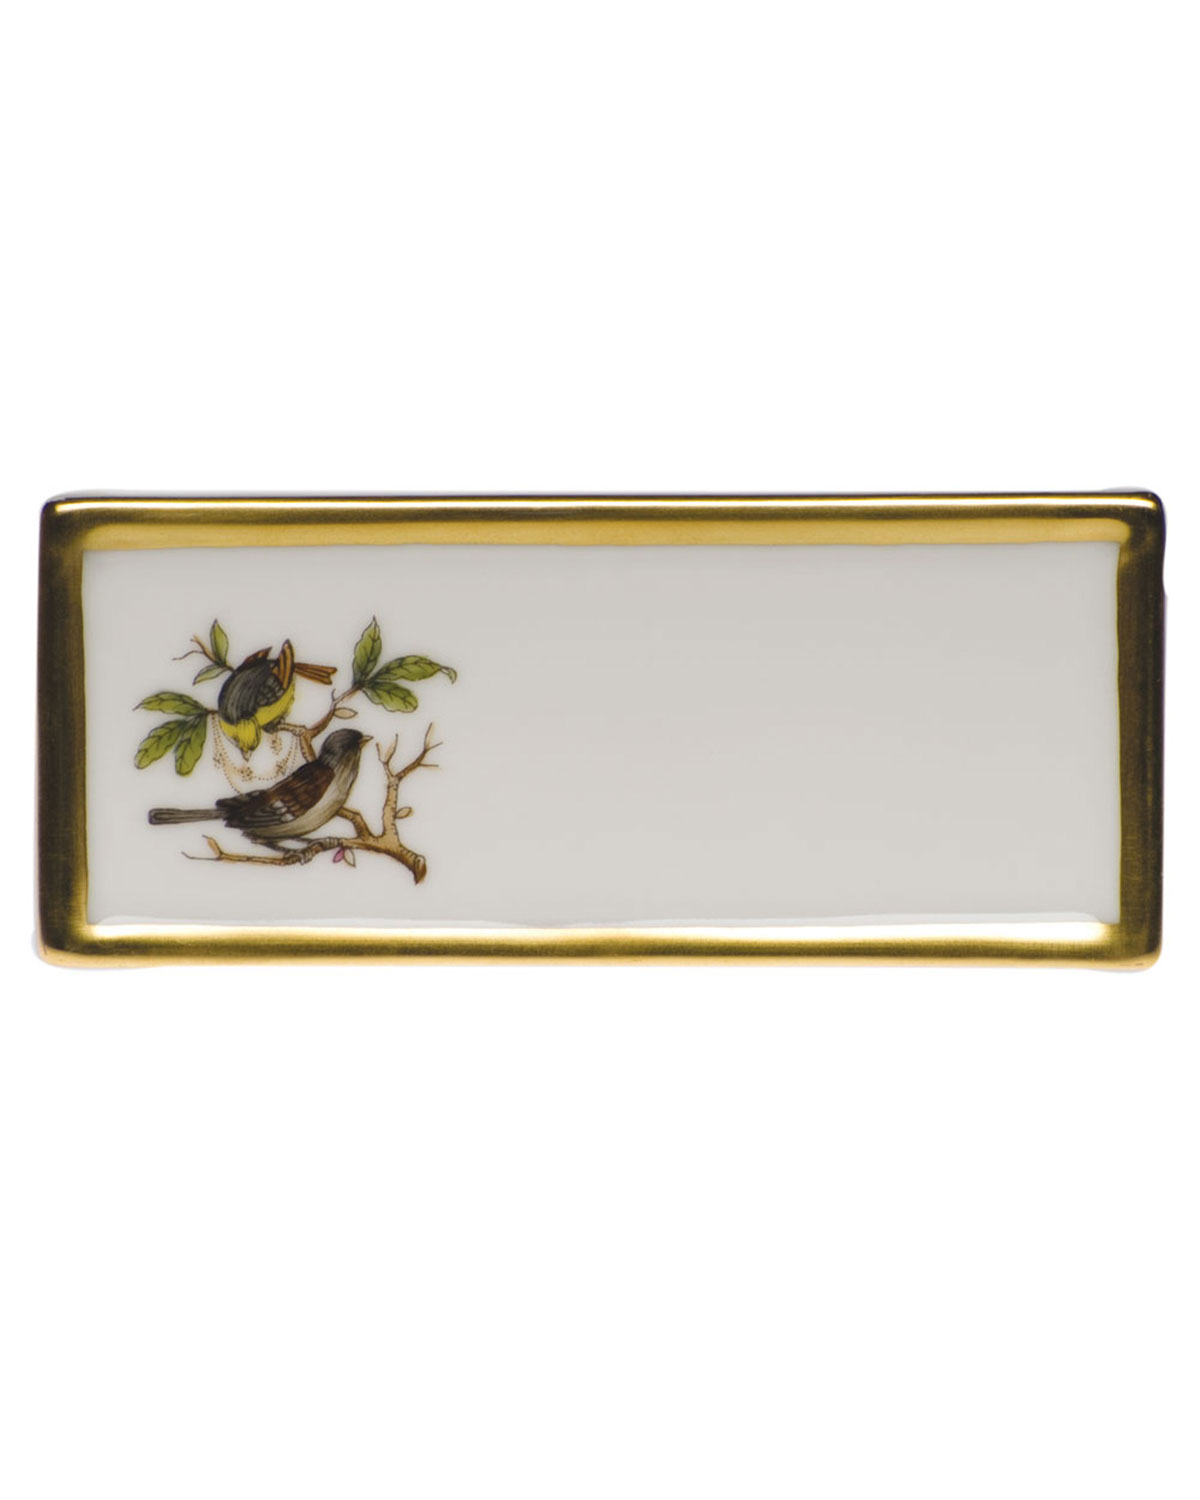 Herend Rothschild Bird Place Card Holder - Motif 01